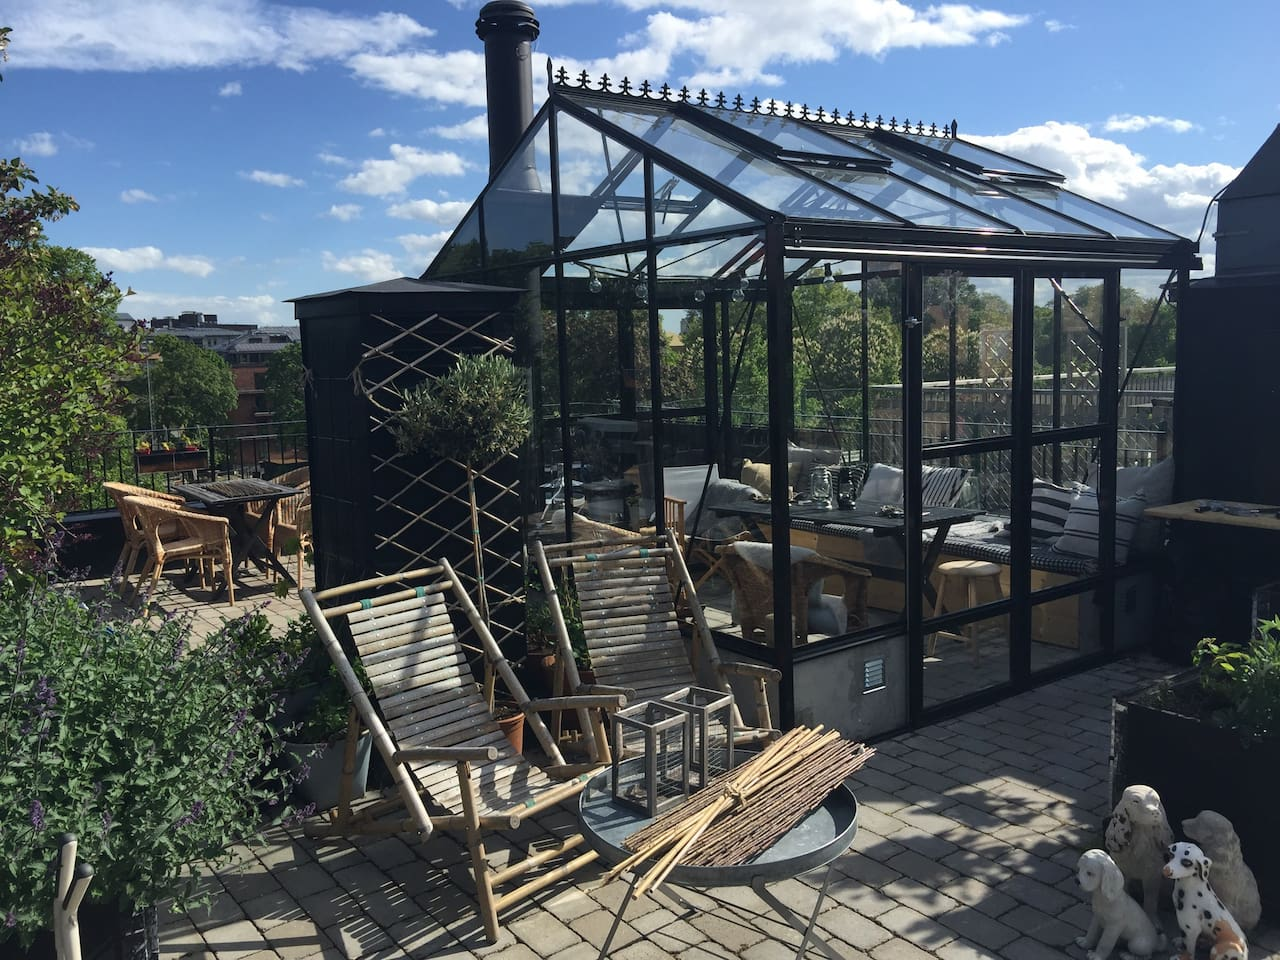 Our own private roof terrace with a small glass house, and a fire place so that you can have dinner on the roof top even on colder days. Large enough for 6-8 people having dinner.